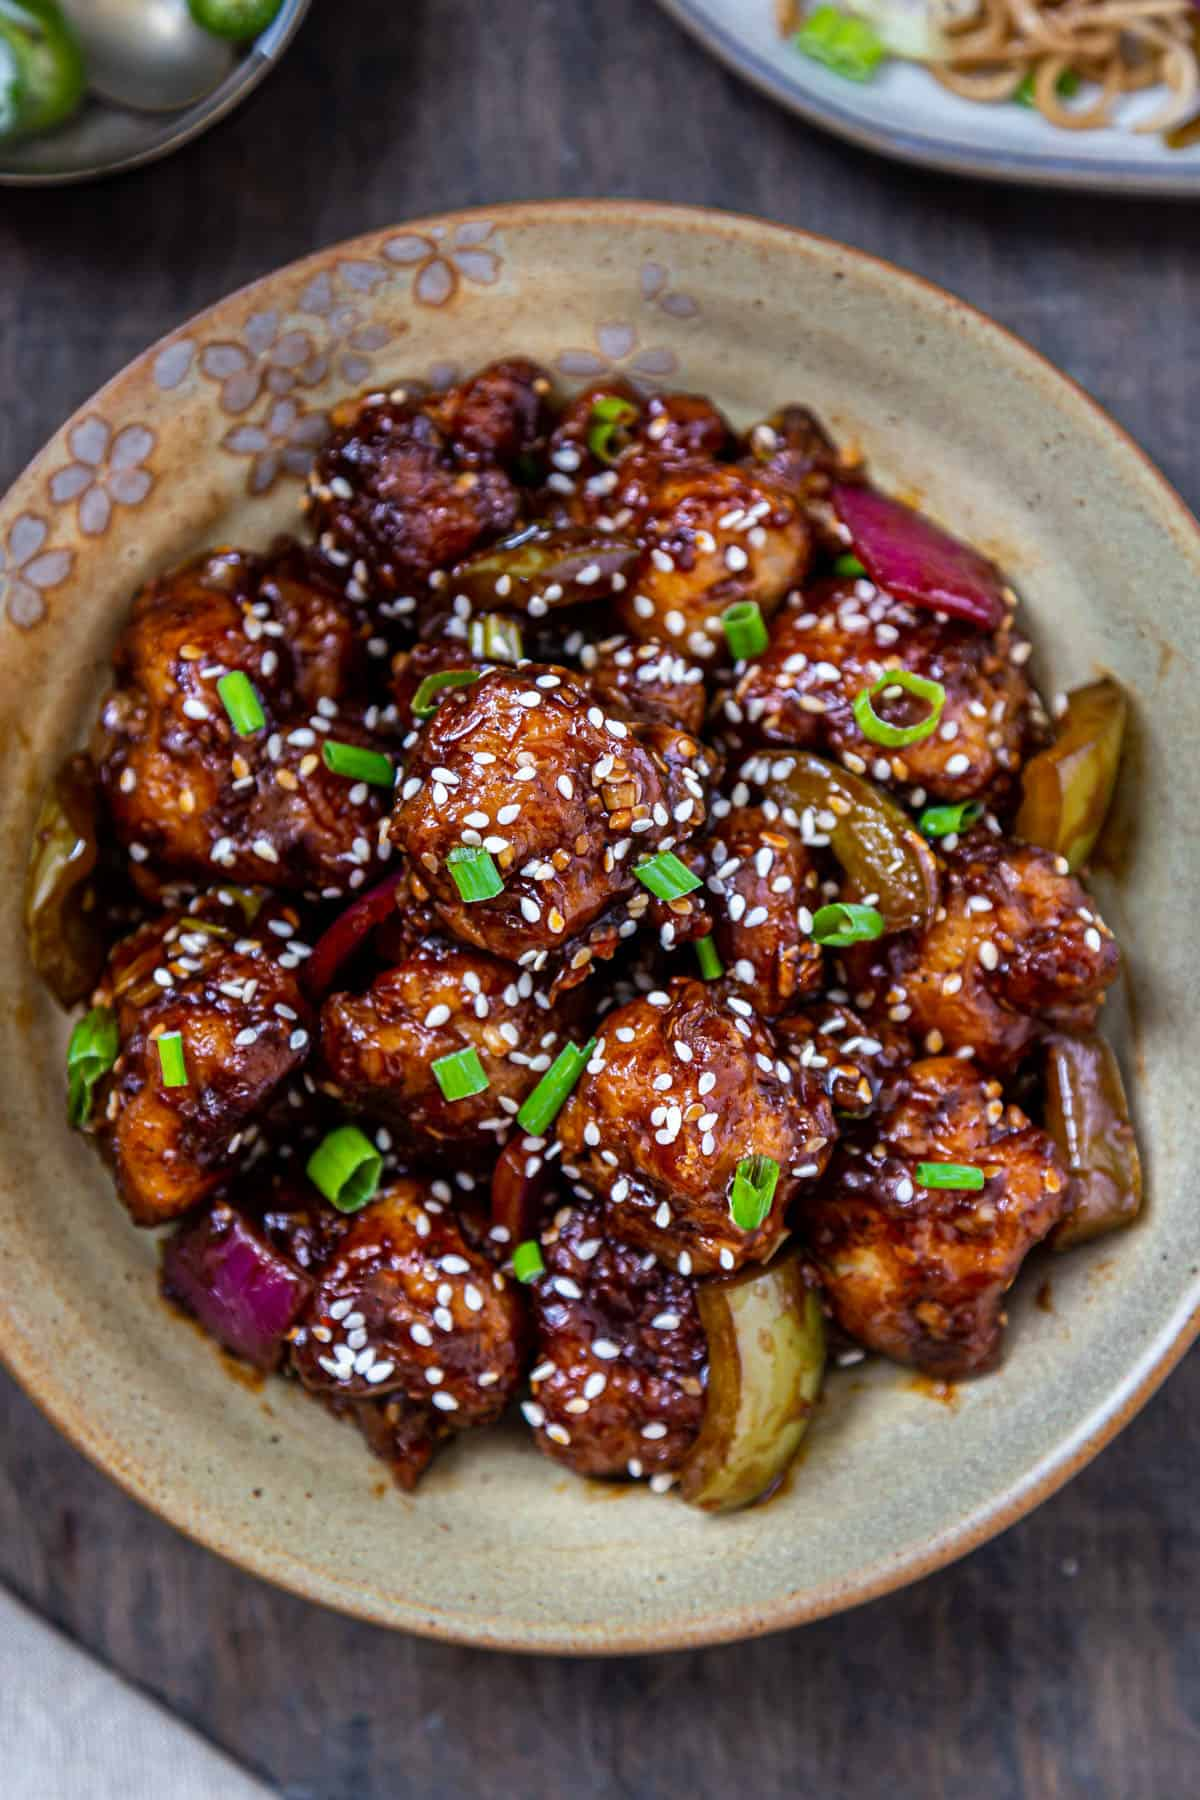 Plate stacked with gobi manchurian